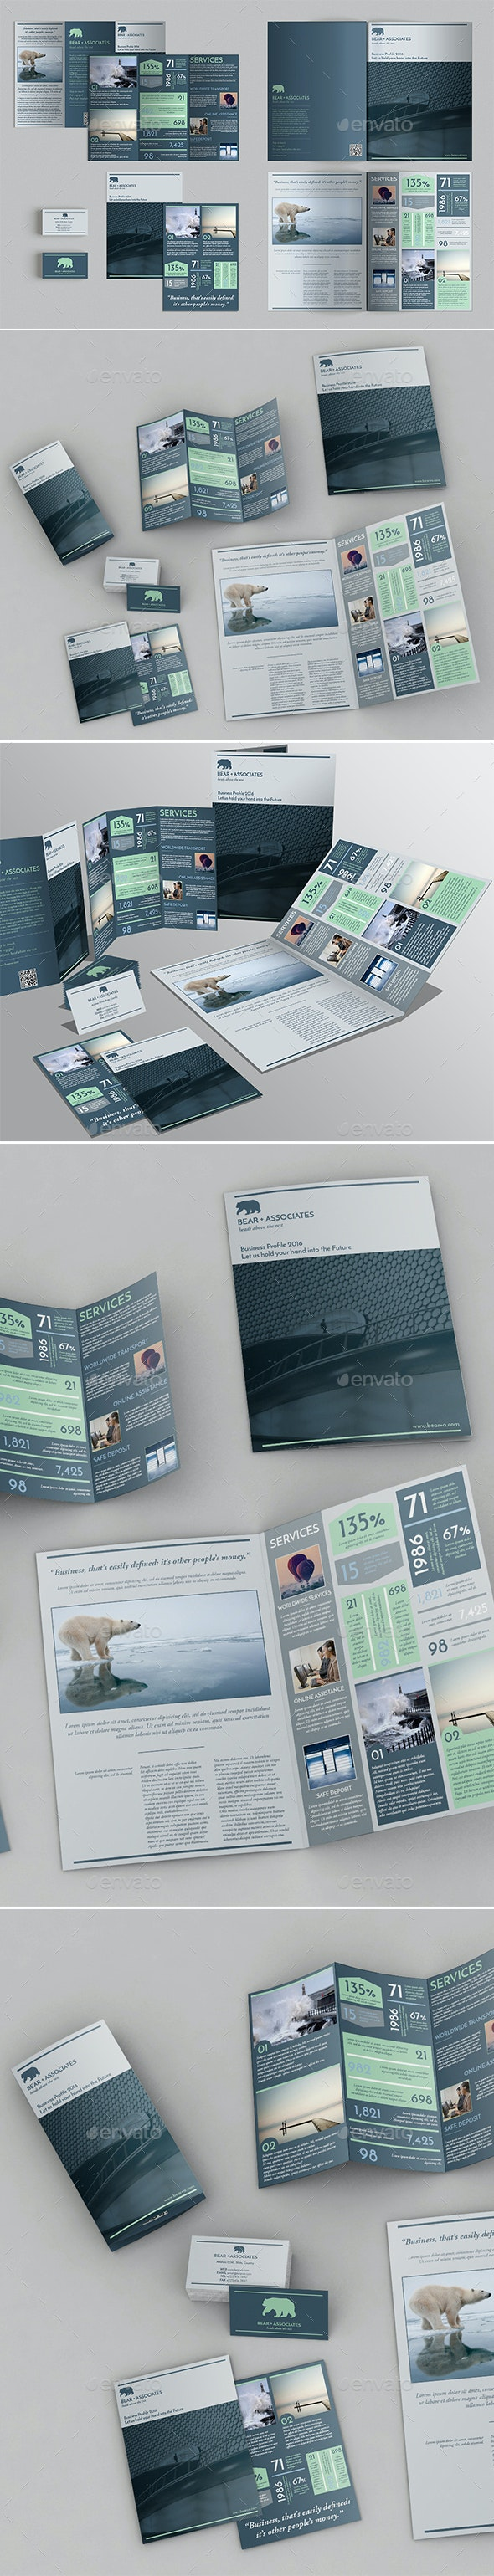 Set of Brochures / Stationery Templates - Brochures Print Templates